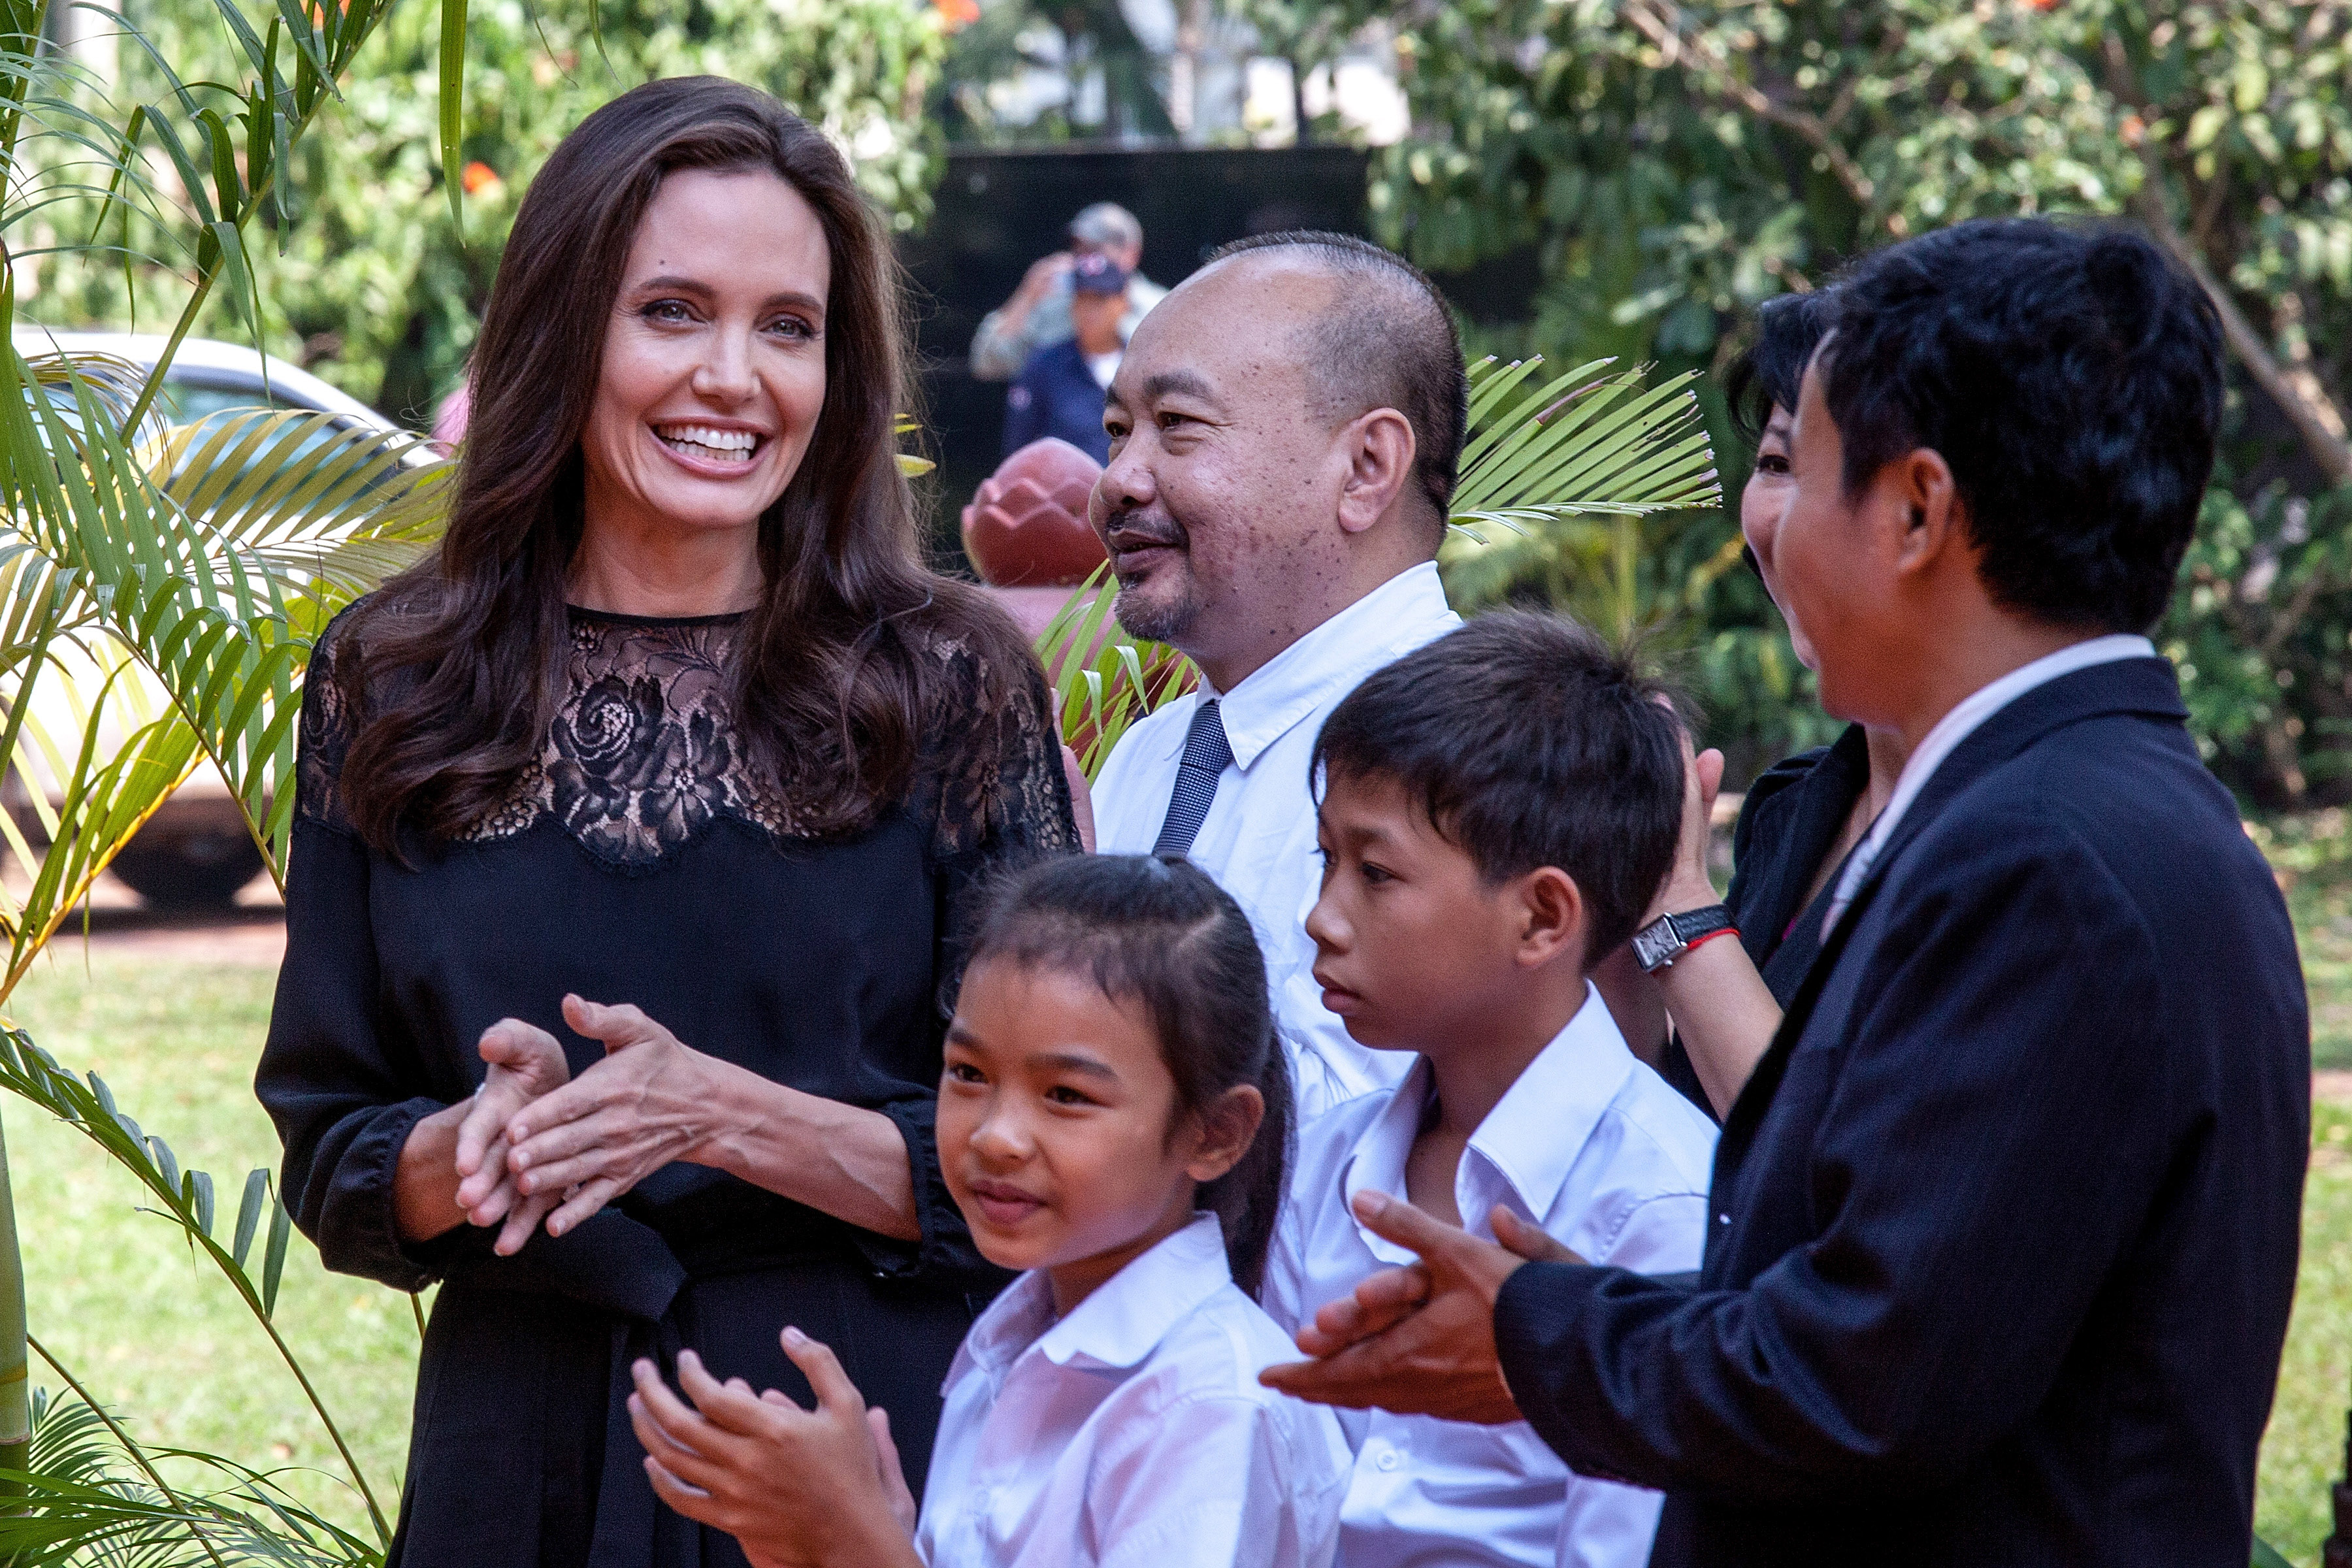 Angelina Jolie and producer Rithy Panh (center) chat with actors before holding a press conference ahead of the premiere of their new film  First They Killed My Father , on Feb. 18, 2017 in Siem Reap, Cambodia.